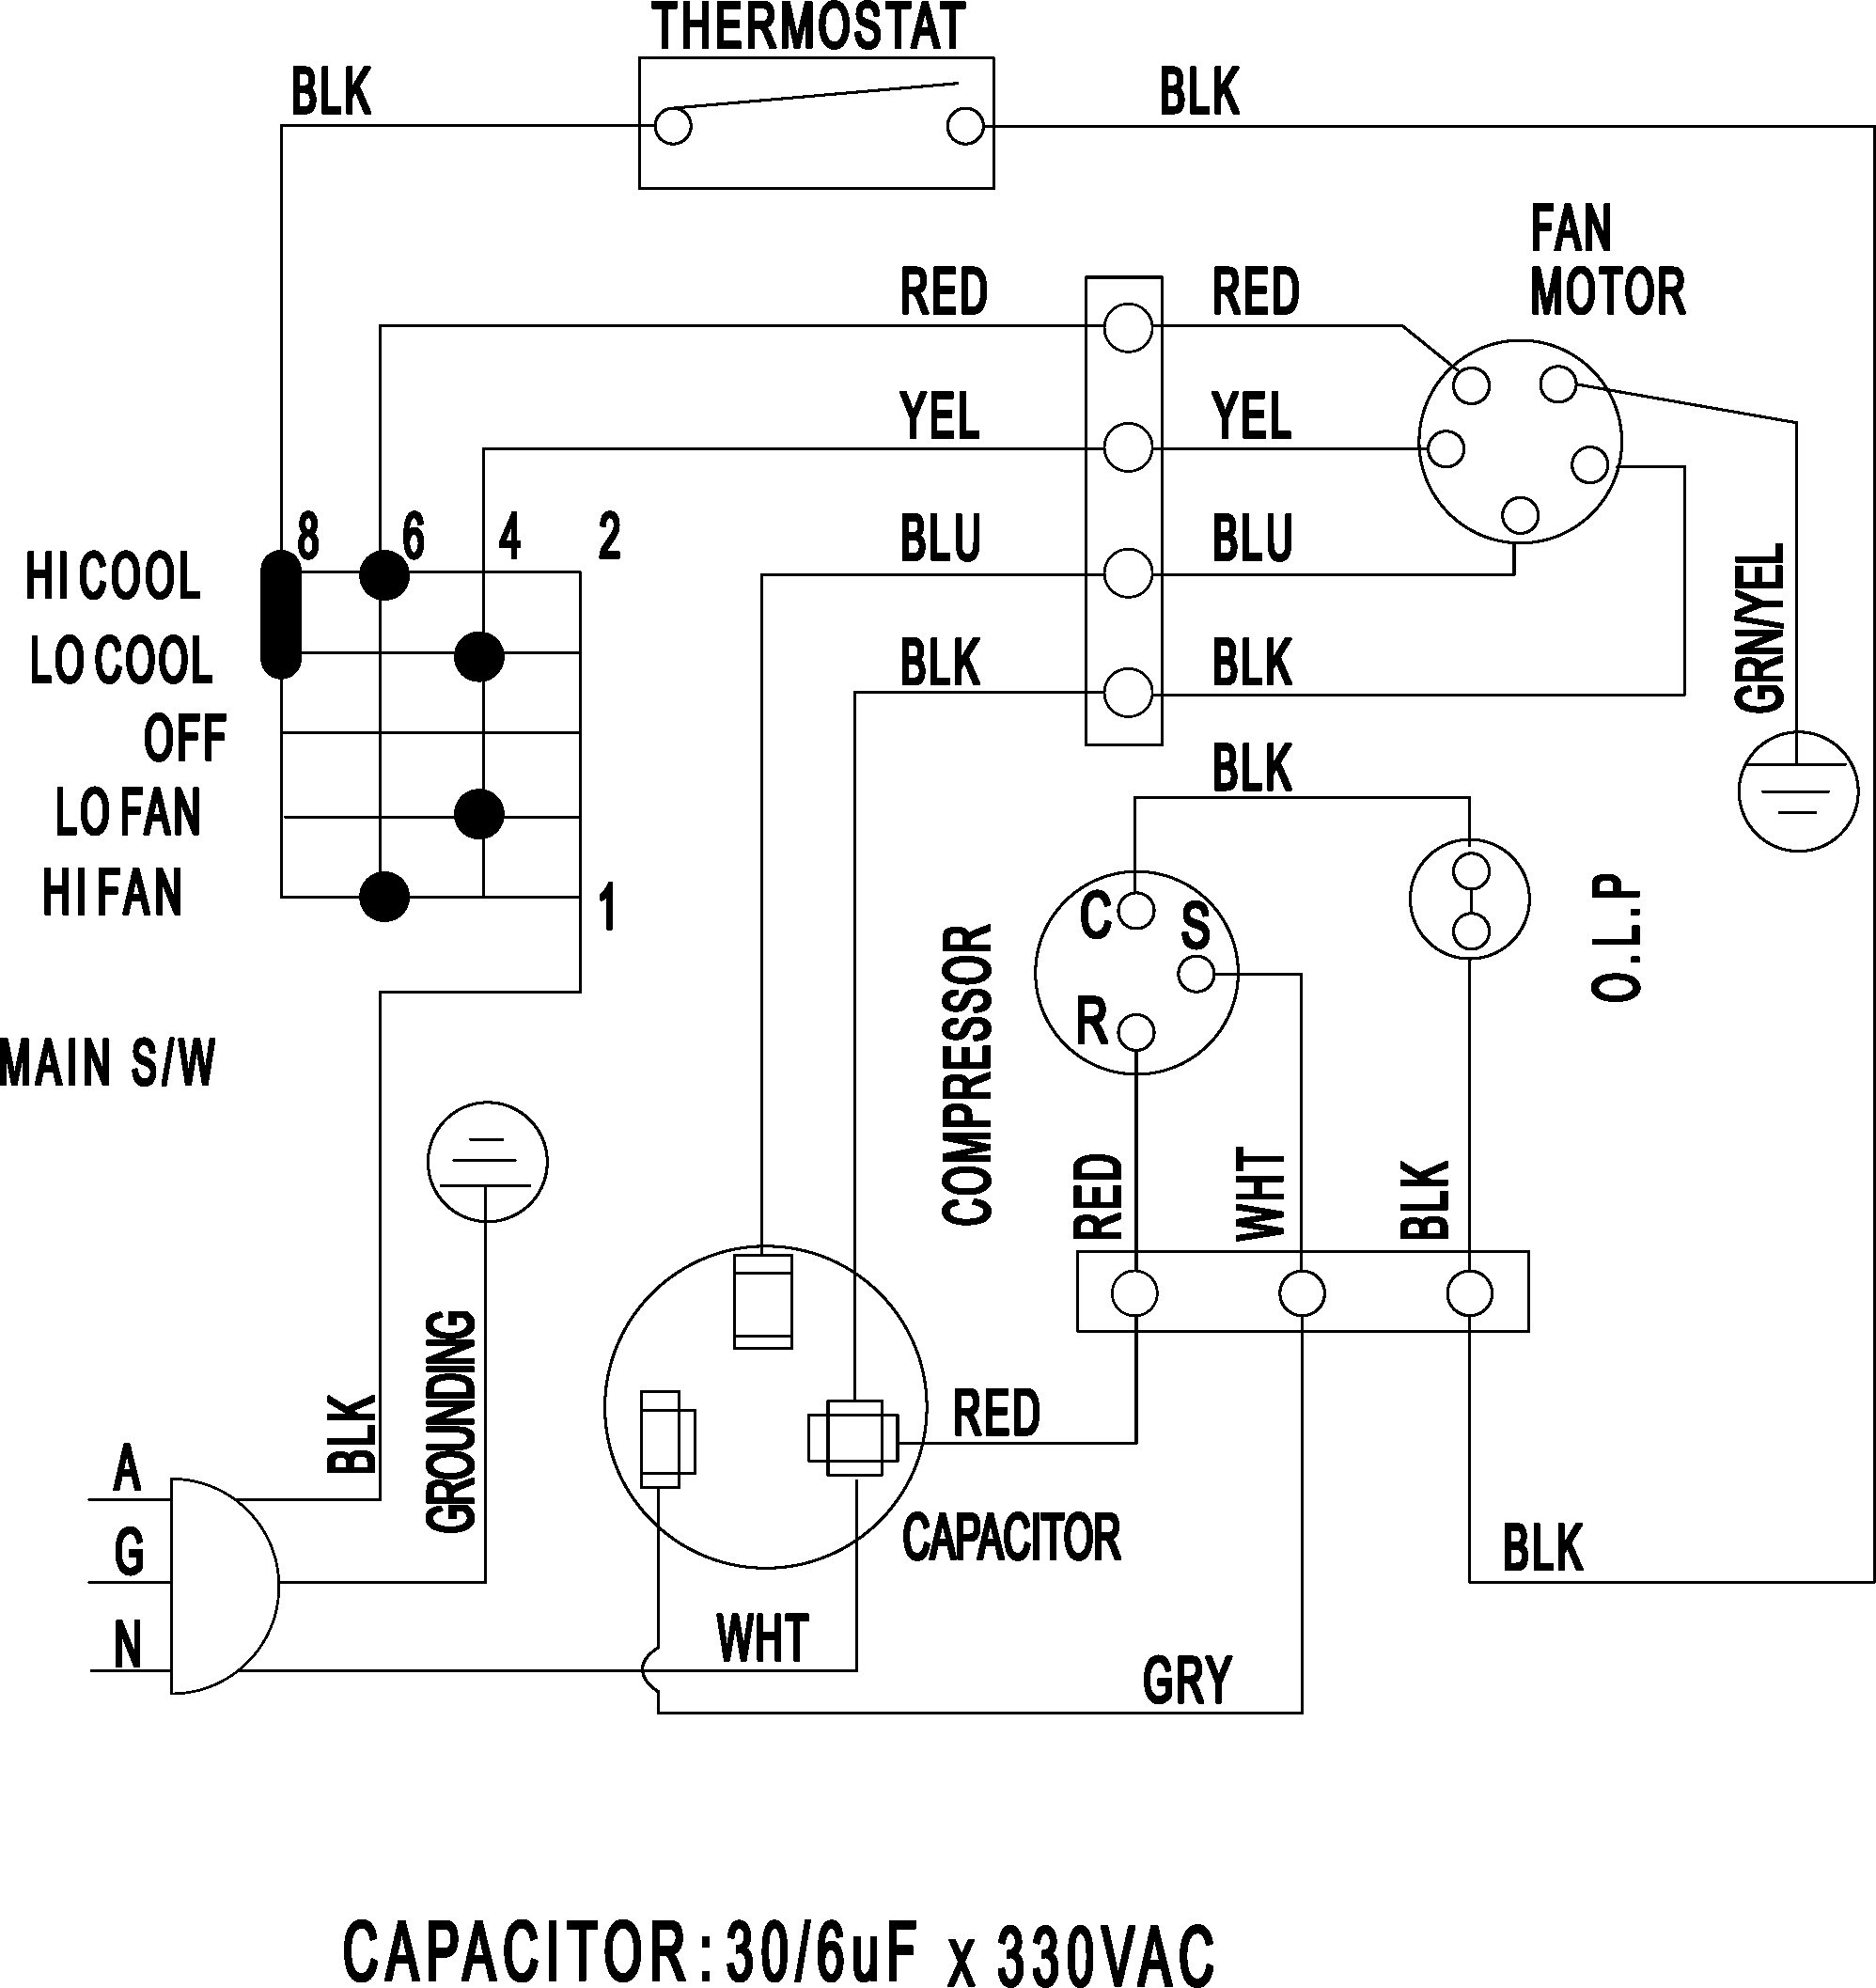 York Motor Wiring Diagram - Wiring Diagram Data Oreo - Motor Wiring Diagram